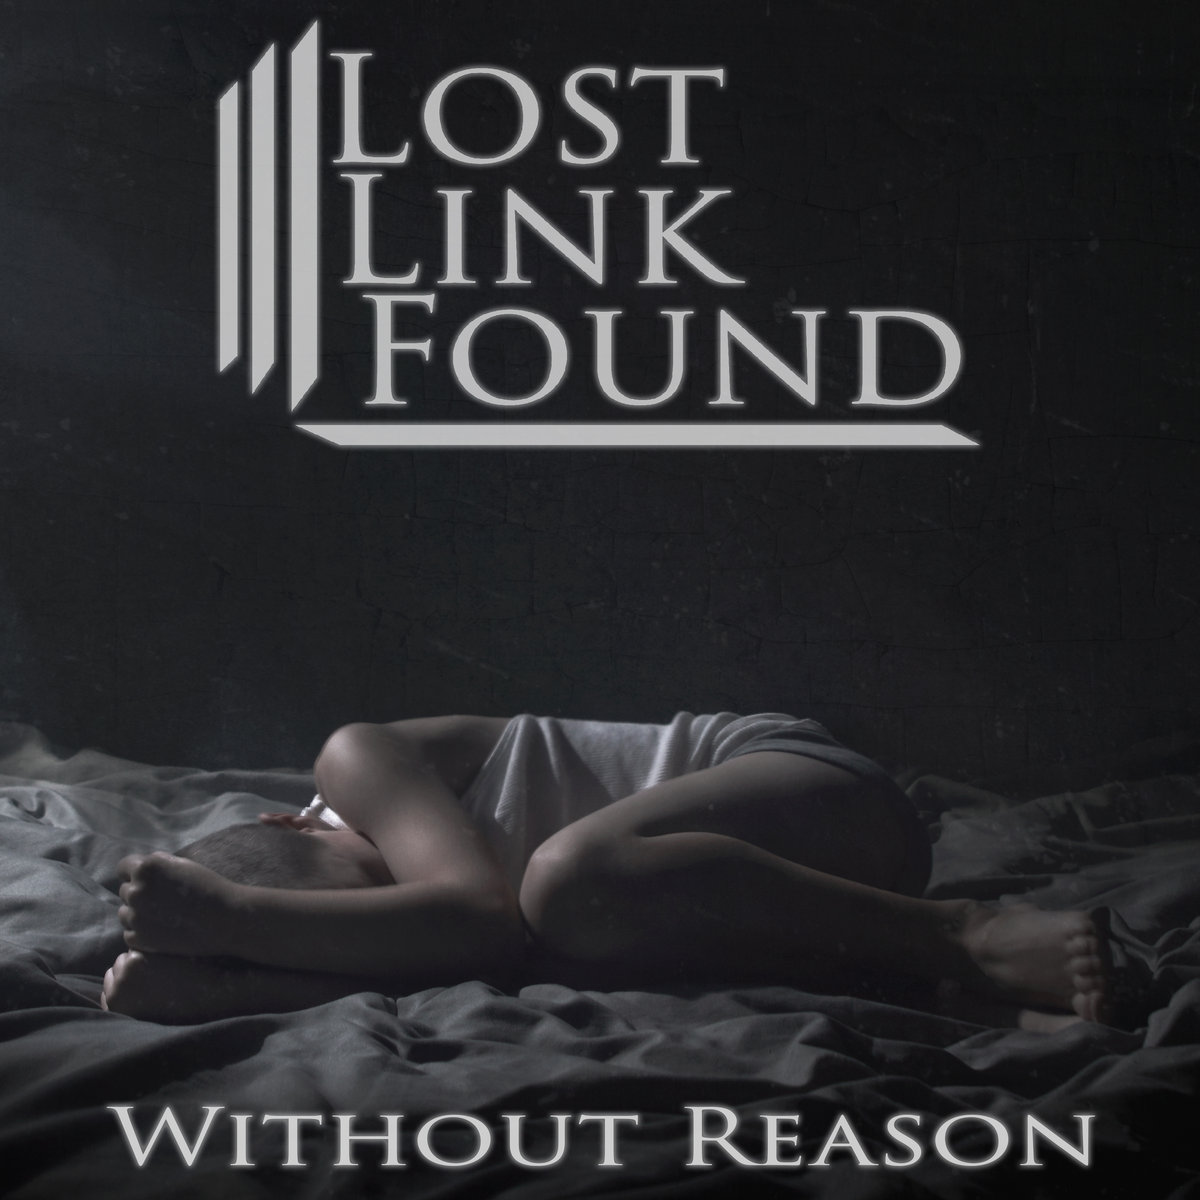 Lost Link Found - Without Reason [EP] (2015)